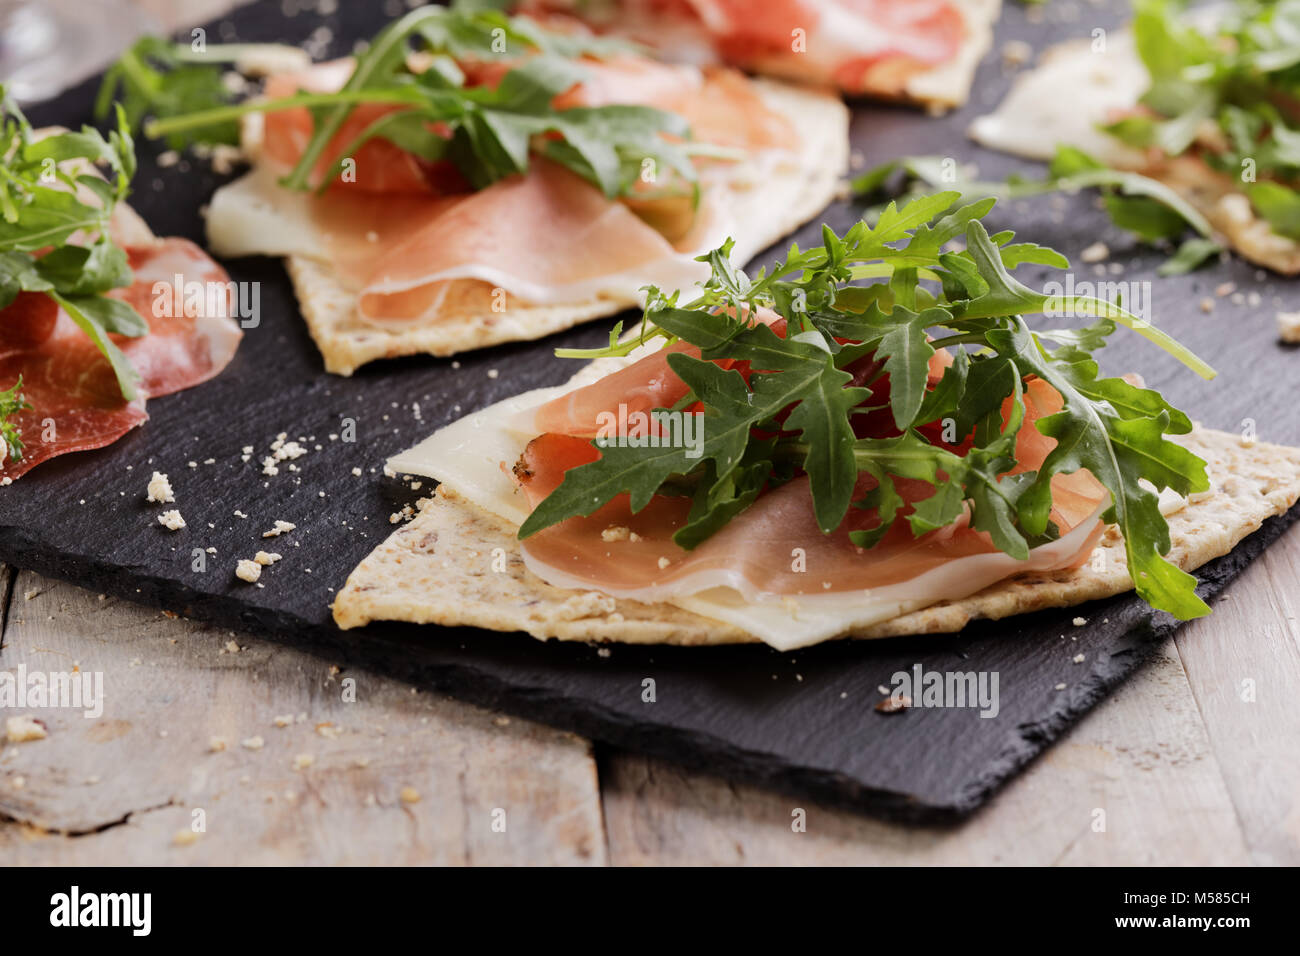 Sandwiches with Prosciutto, sliced cheese, and rocket salad on wedges of piadina - Stock Image